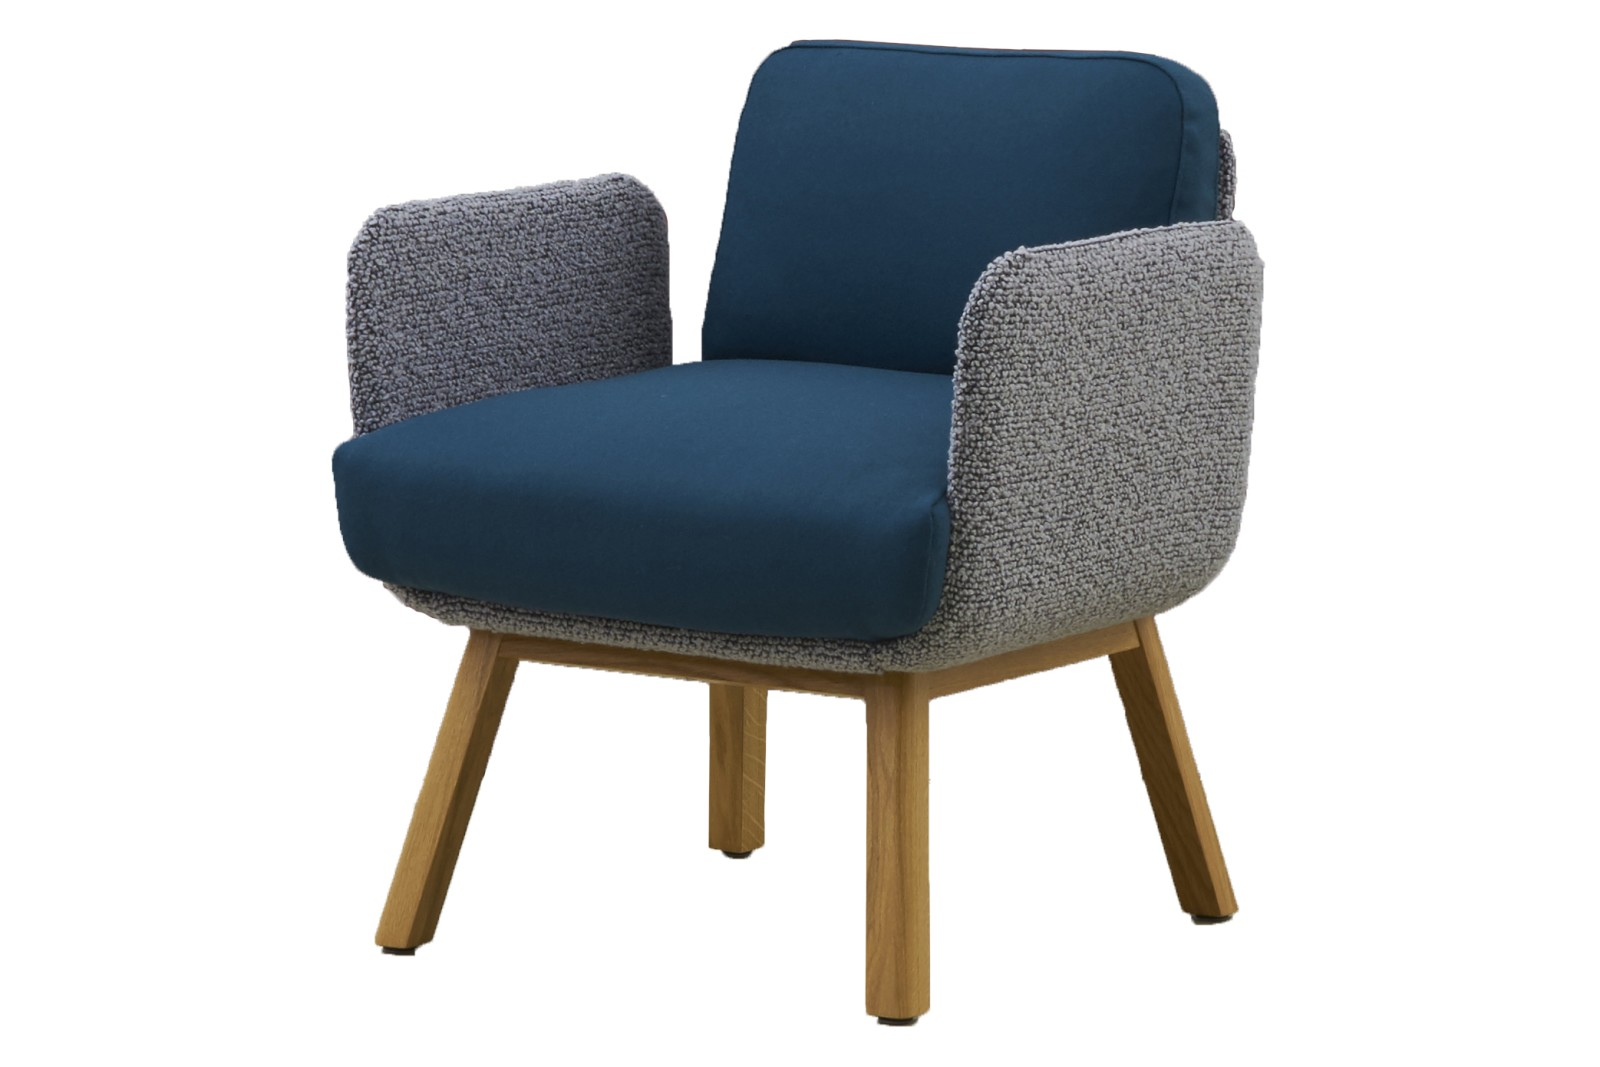 HM10J FLIX Arm Chair With Wooden Base Kvadrat Steelcut 2 Natural Lacquered